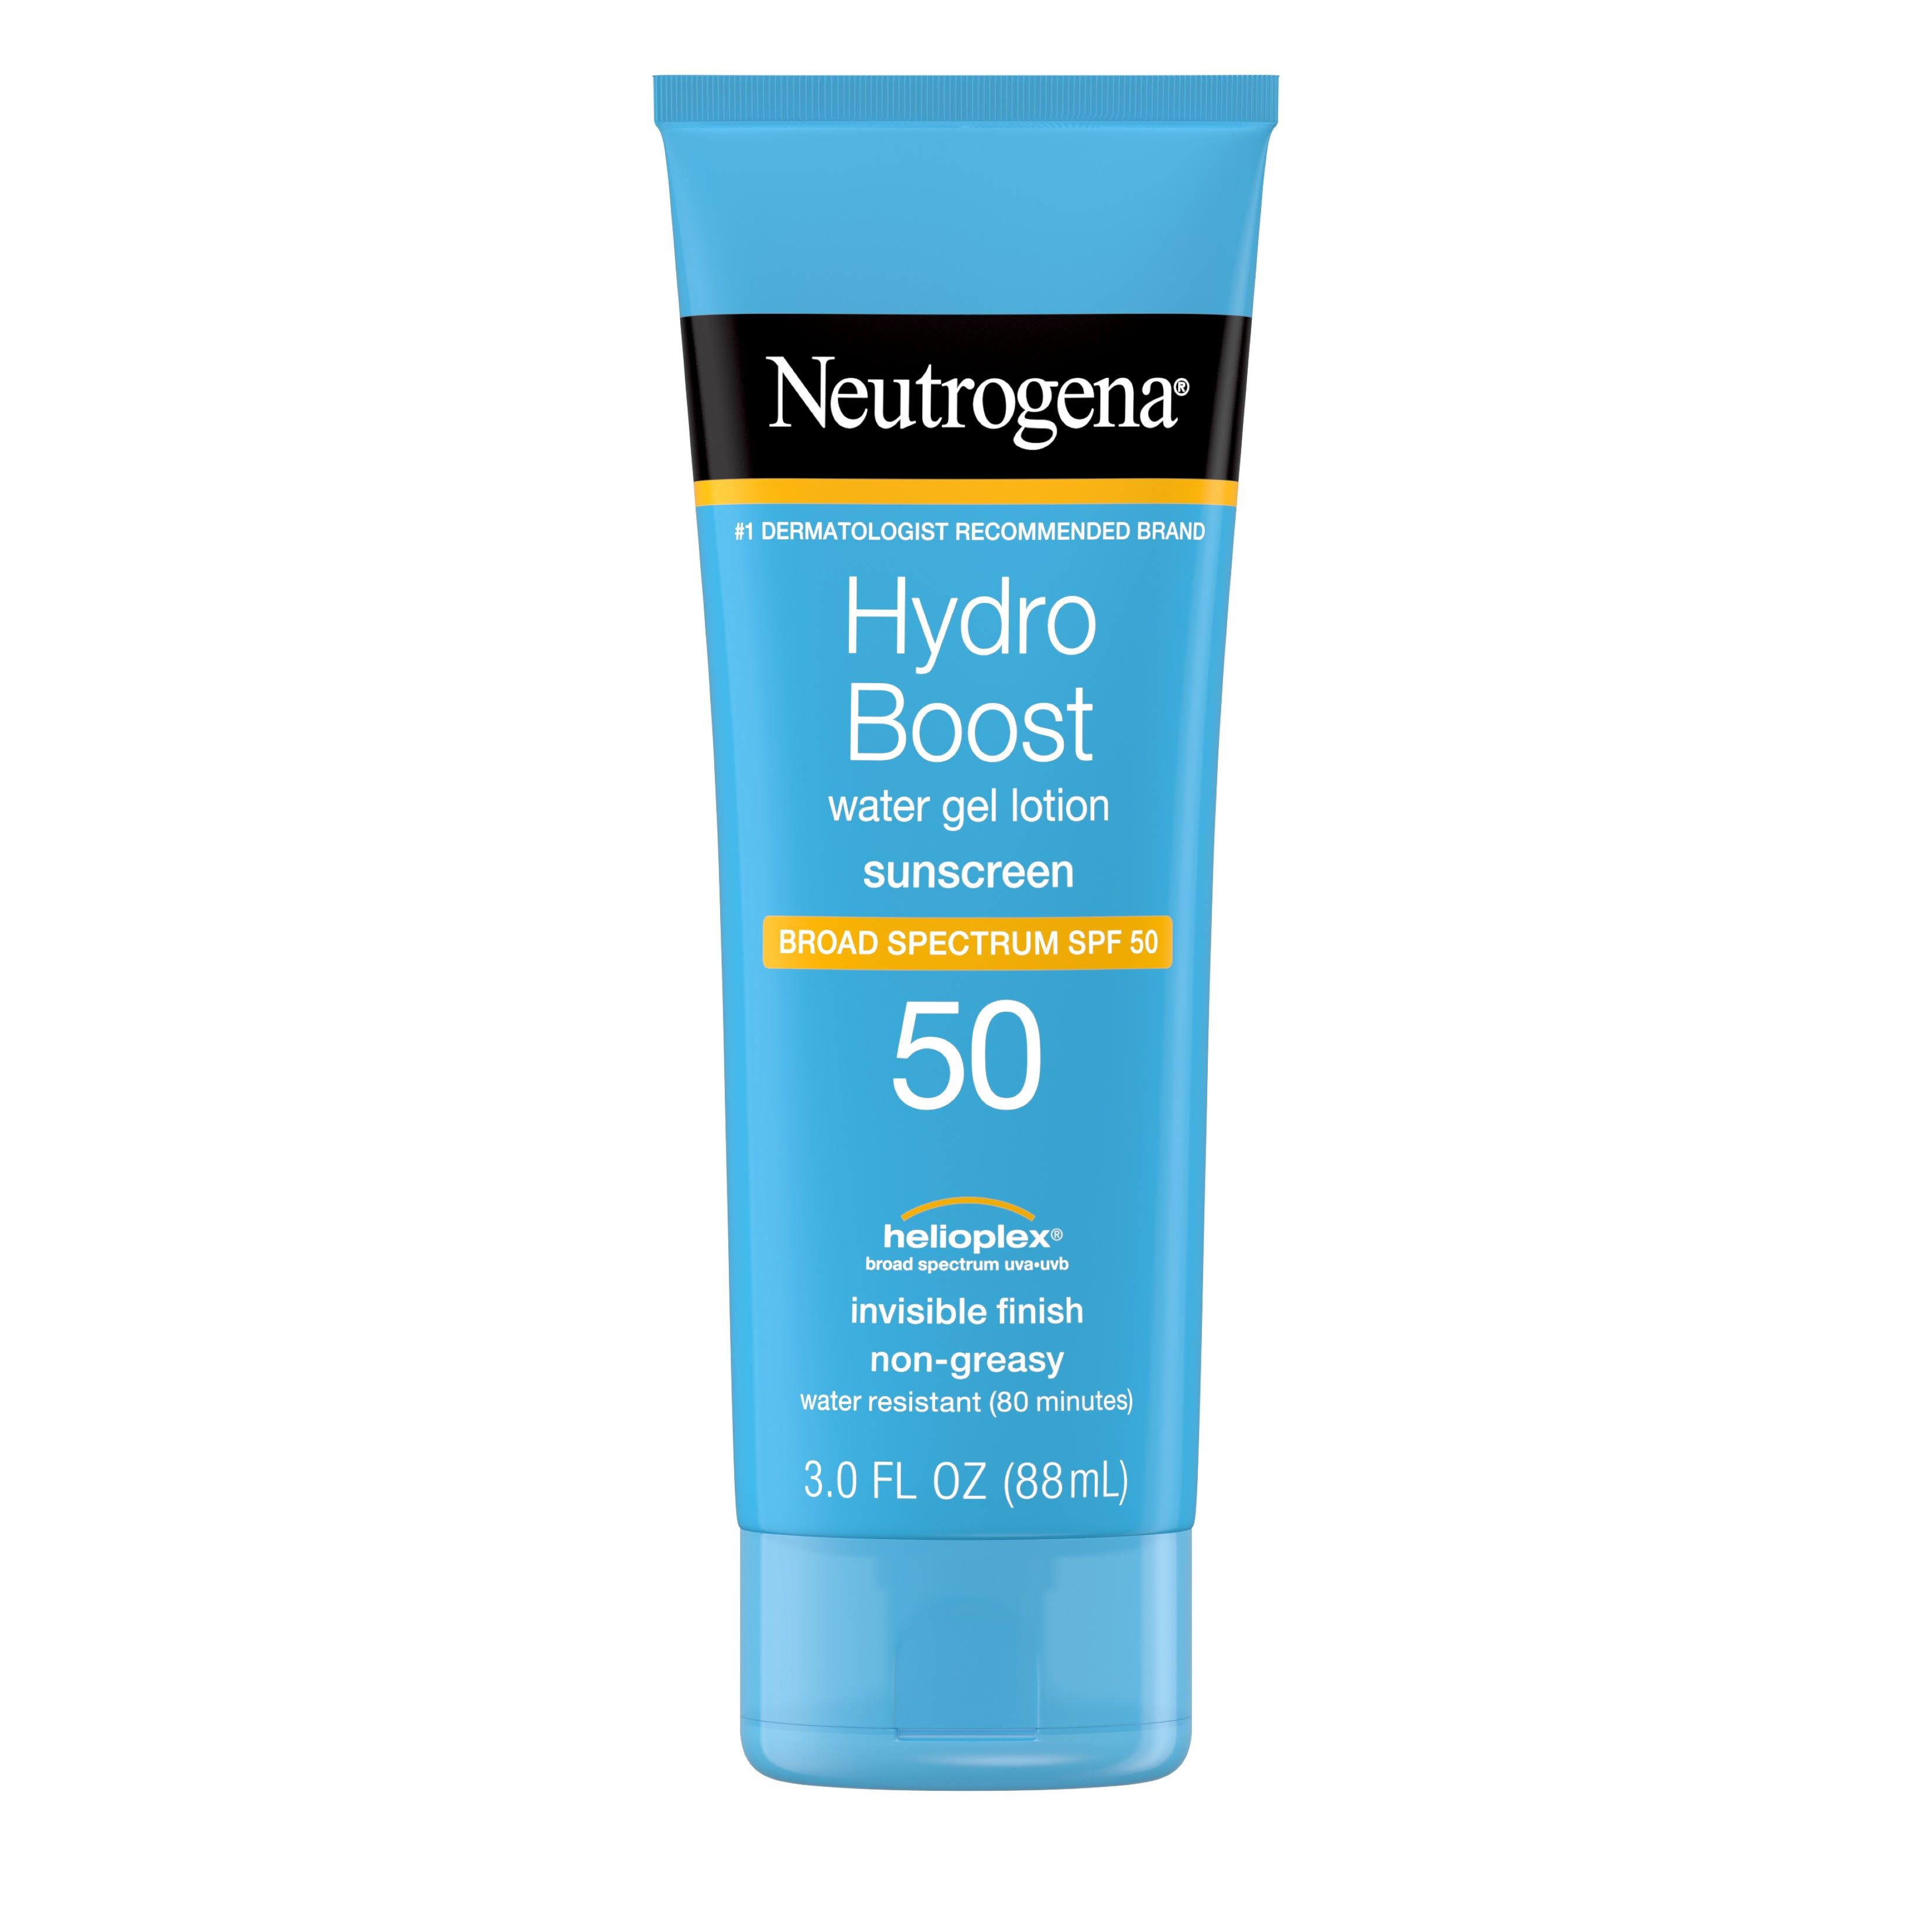 Neutrogena Hydro Boost Gel Moisturizing Sunscreen Lotion - SPF 50, 3oz